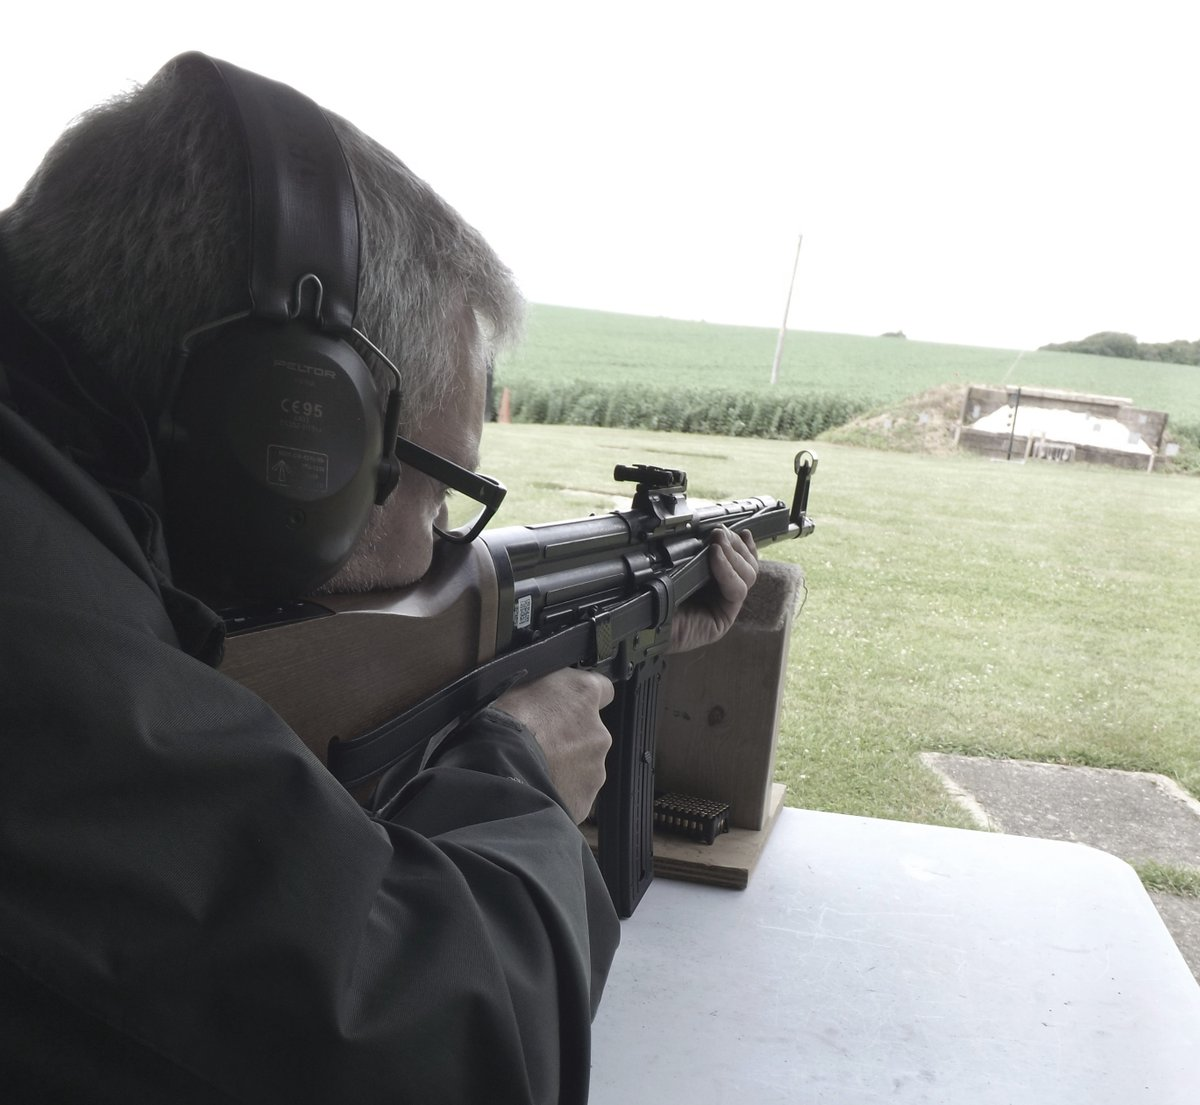 In late 1944 the MP-44 was finally dubbed the StG 44 or the Sturmgewehr (Storm Gun) 44. The German industry pumped out 425,977 StG's for the Wehrmacht. WW2 Experience #skillatarms #vyv #vyvyan #family #love #friends #happy #riflerange #art #outdoorfun #happiness #familytime #wwii